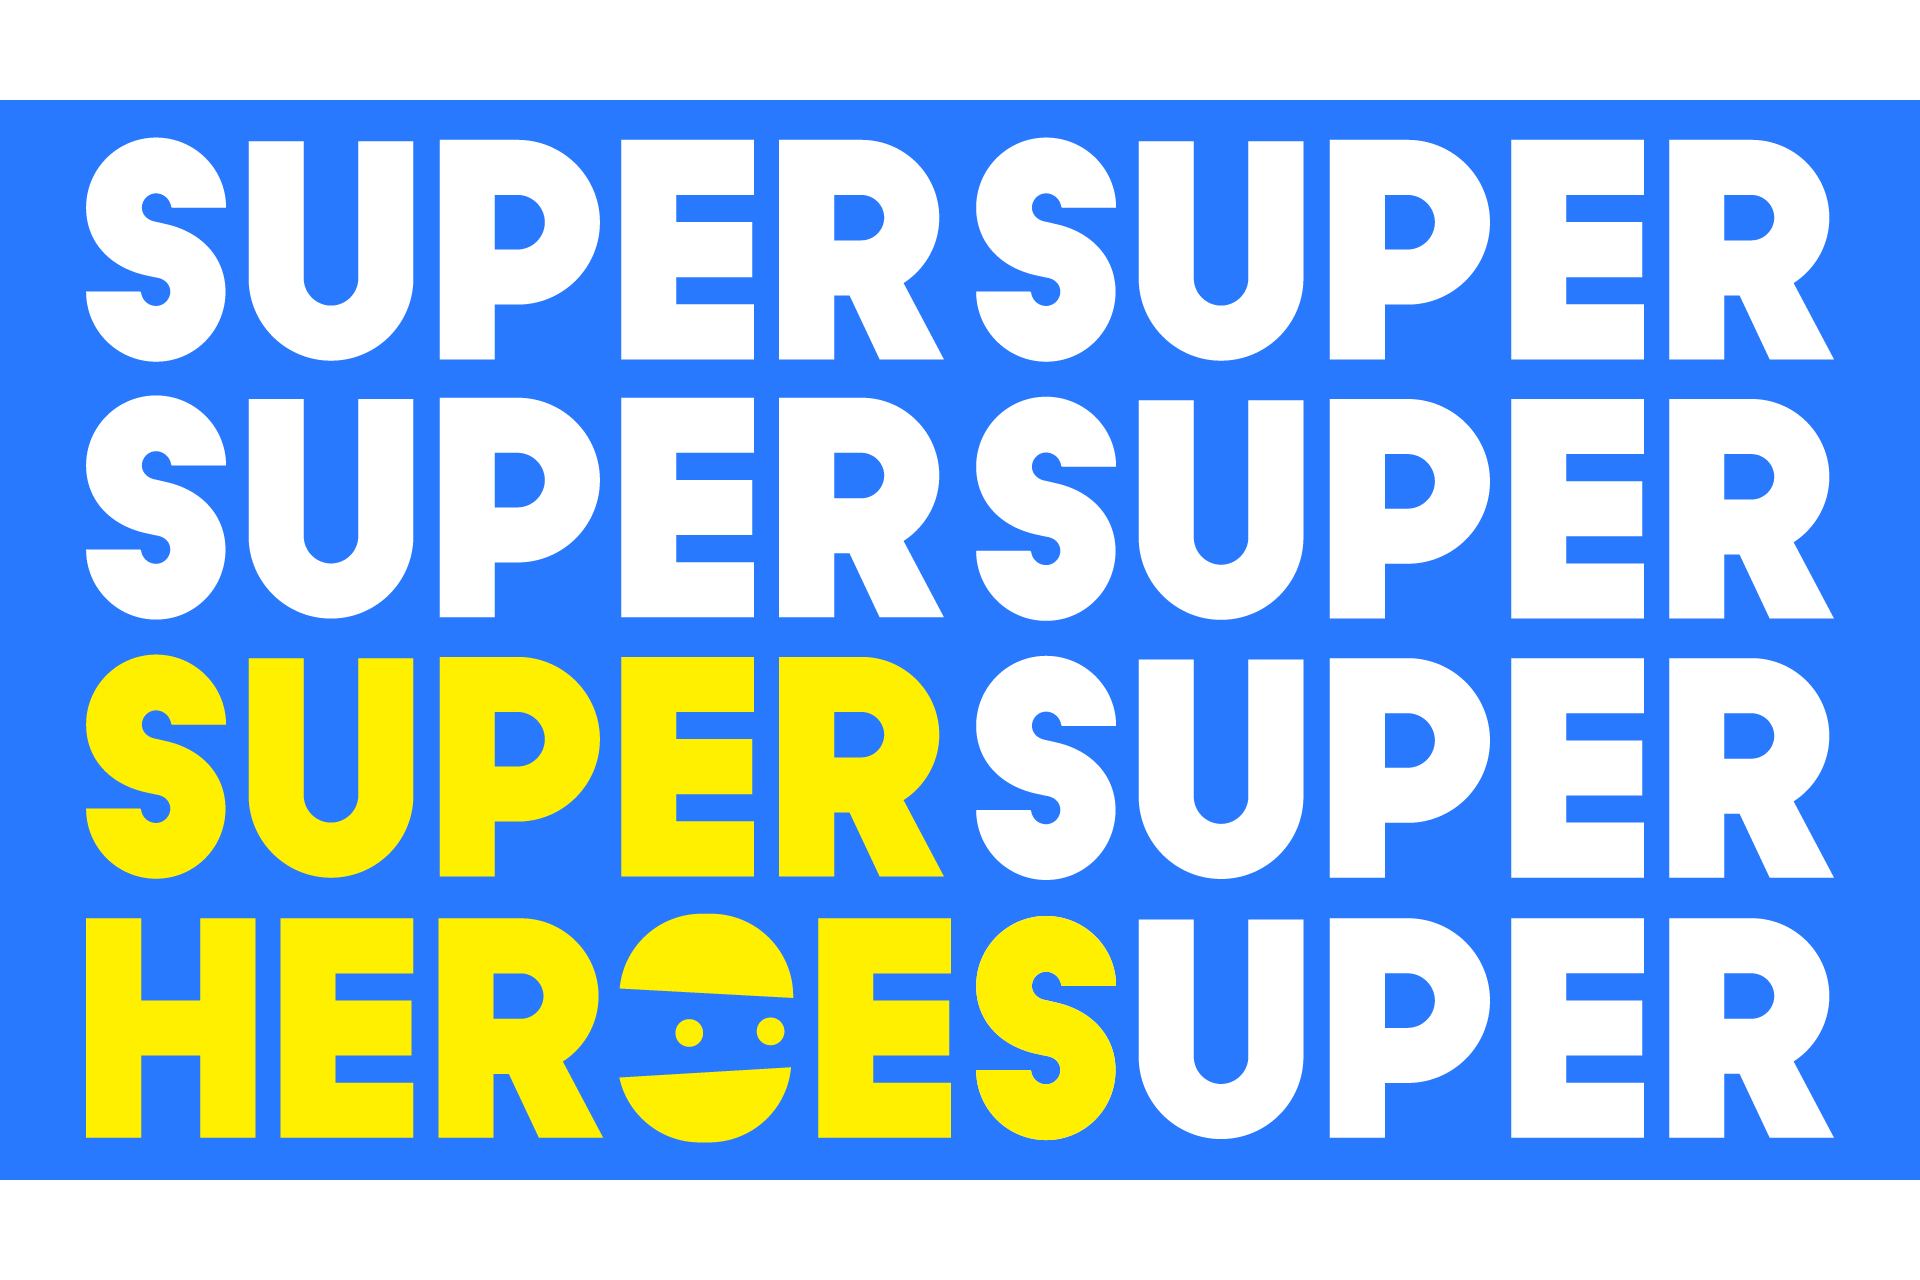 sh_supersuper_yellowwhiteblue